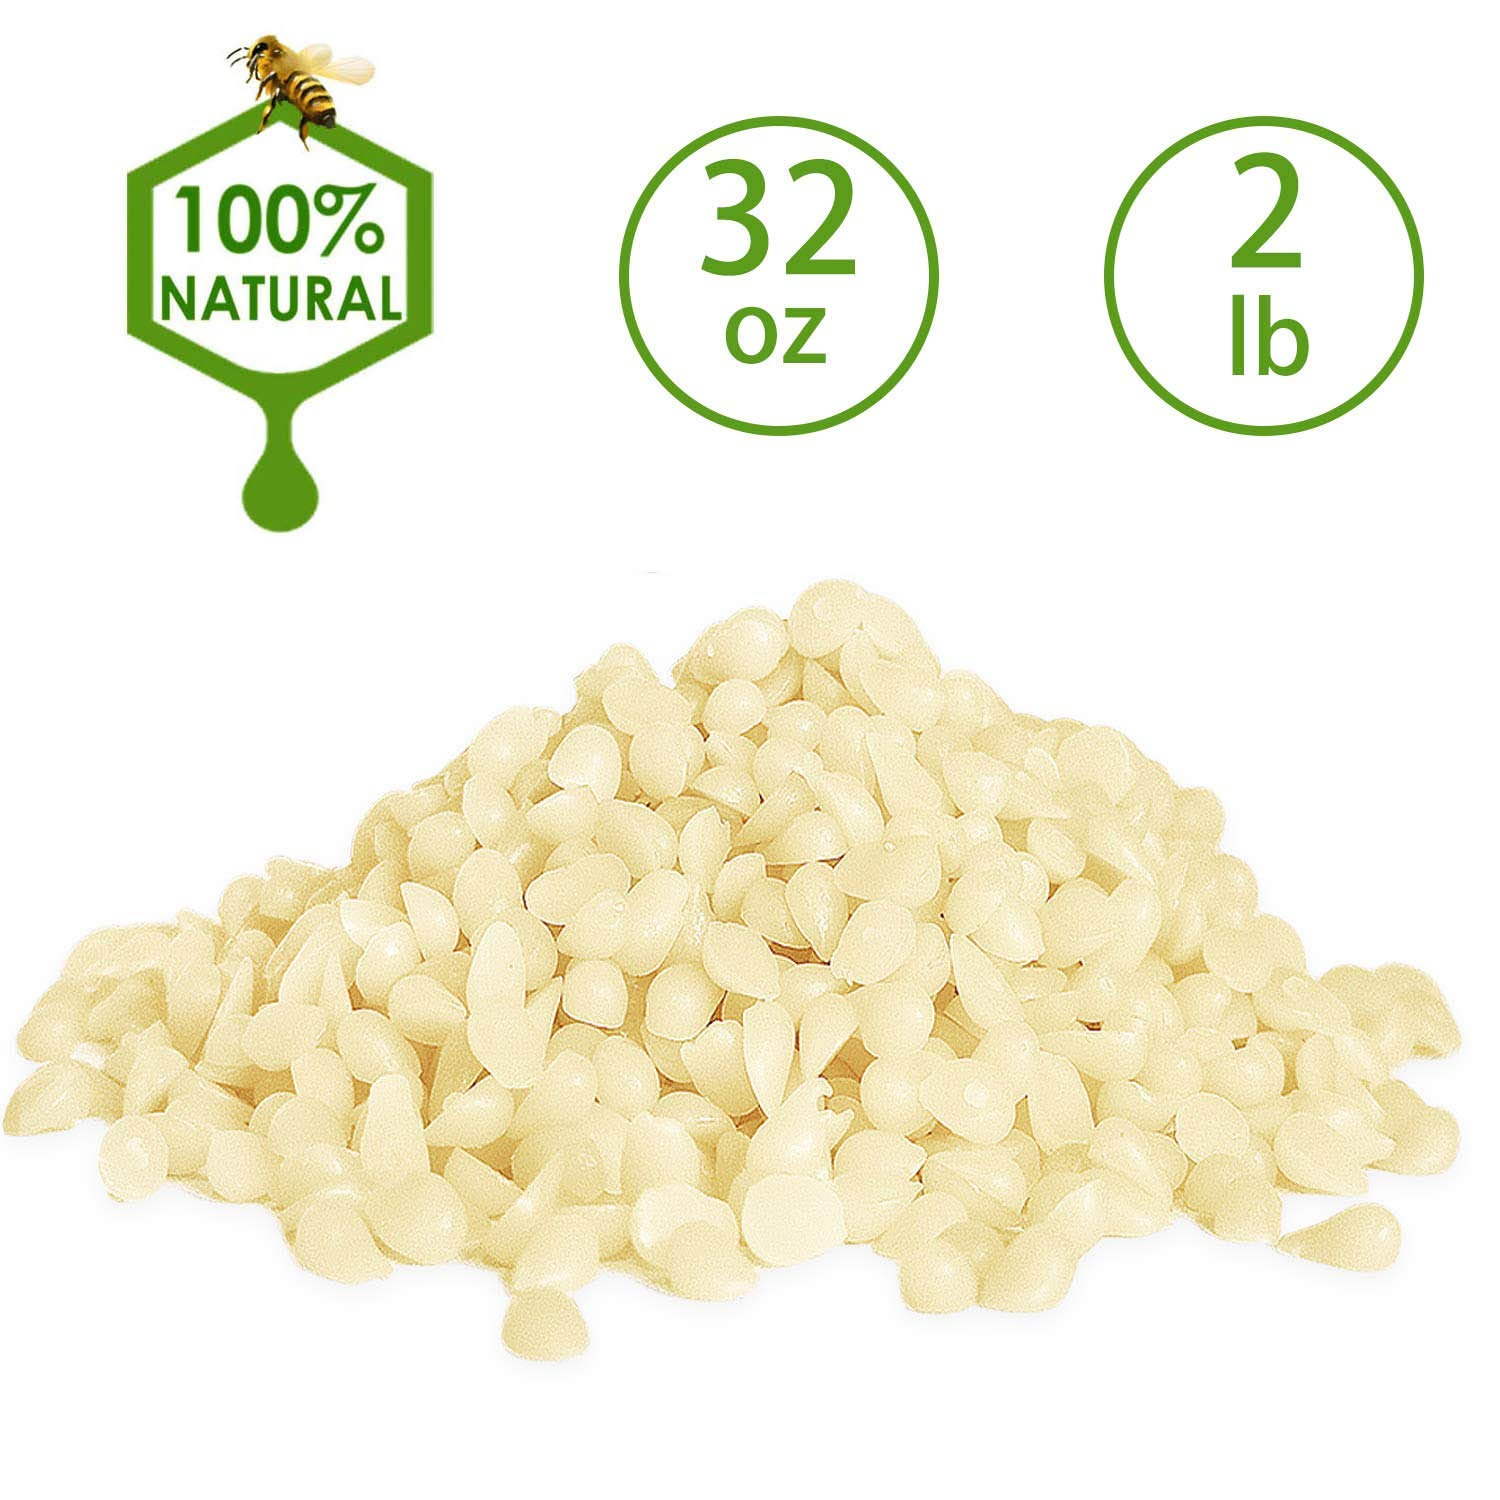 YYCH 2-lb Pure White Beeswax Pellets-100% Pure